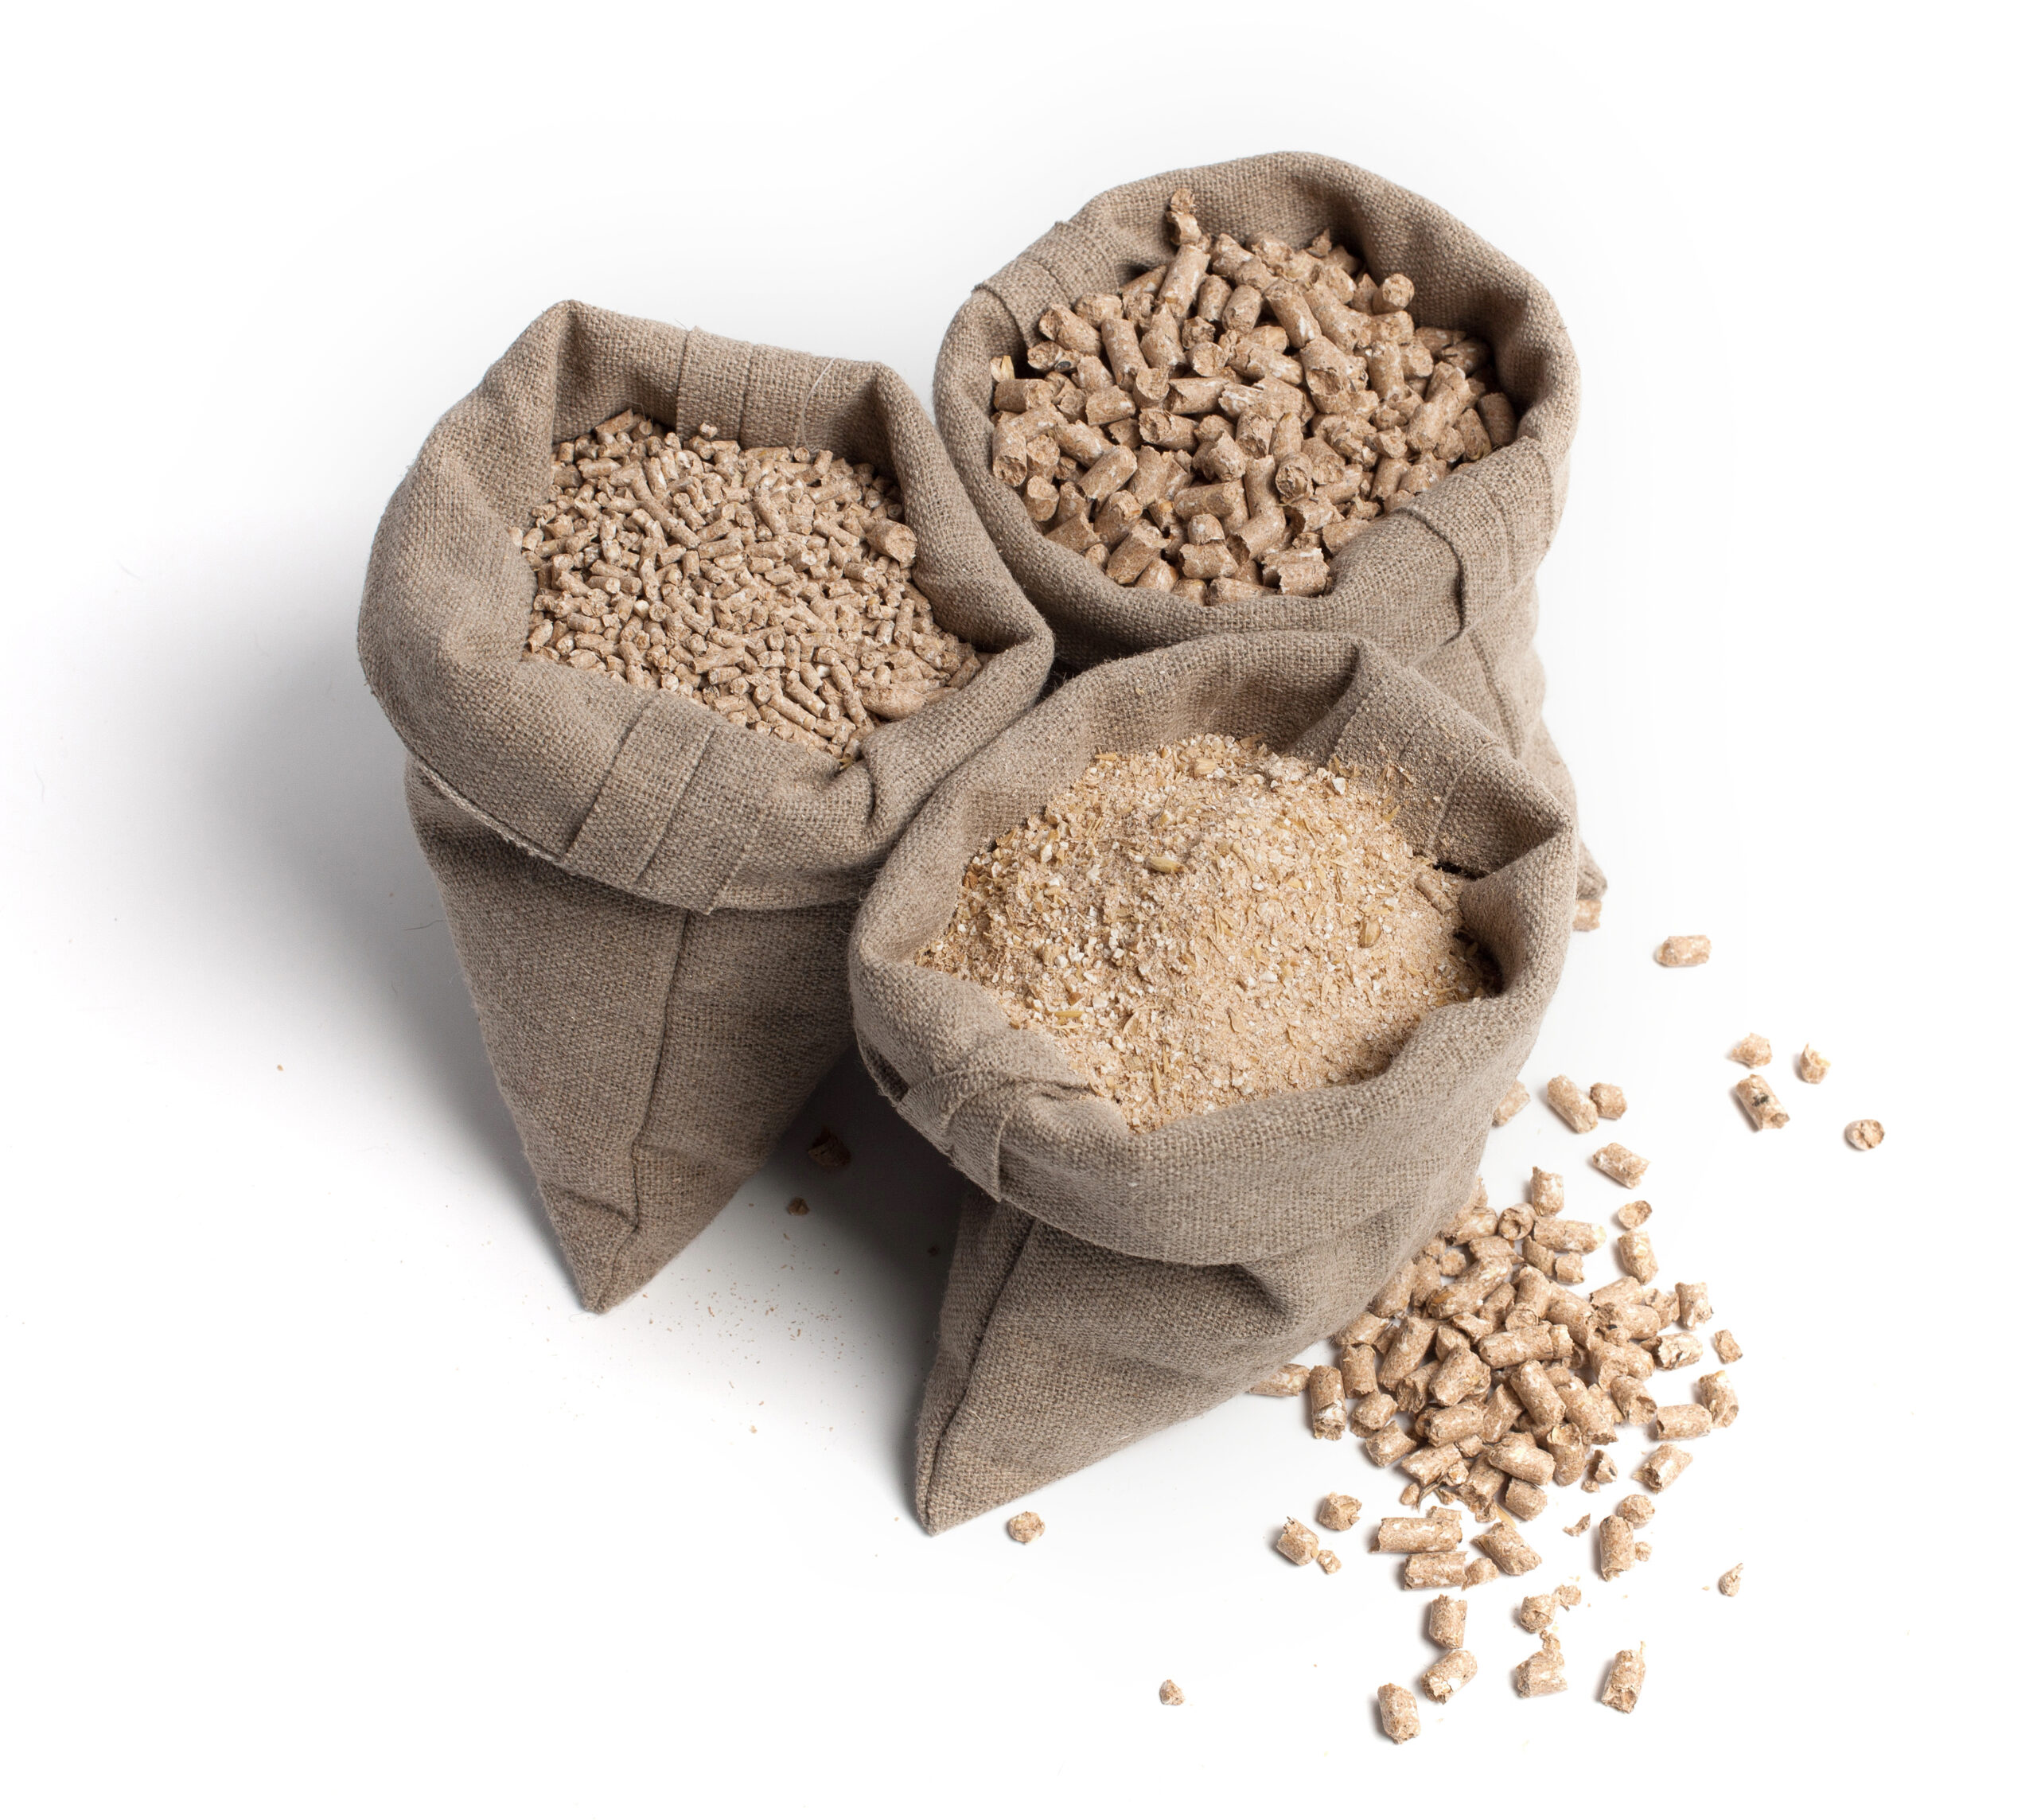 FeedView - Inventory Management - Feed for livestock. Different kinds of granules. Three pouches. Agricultural preparations, dry food, cereals, additives